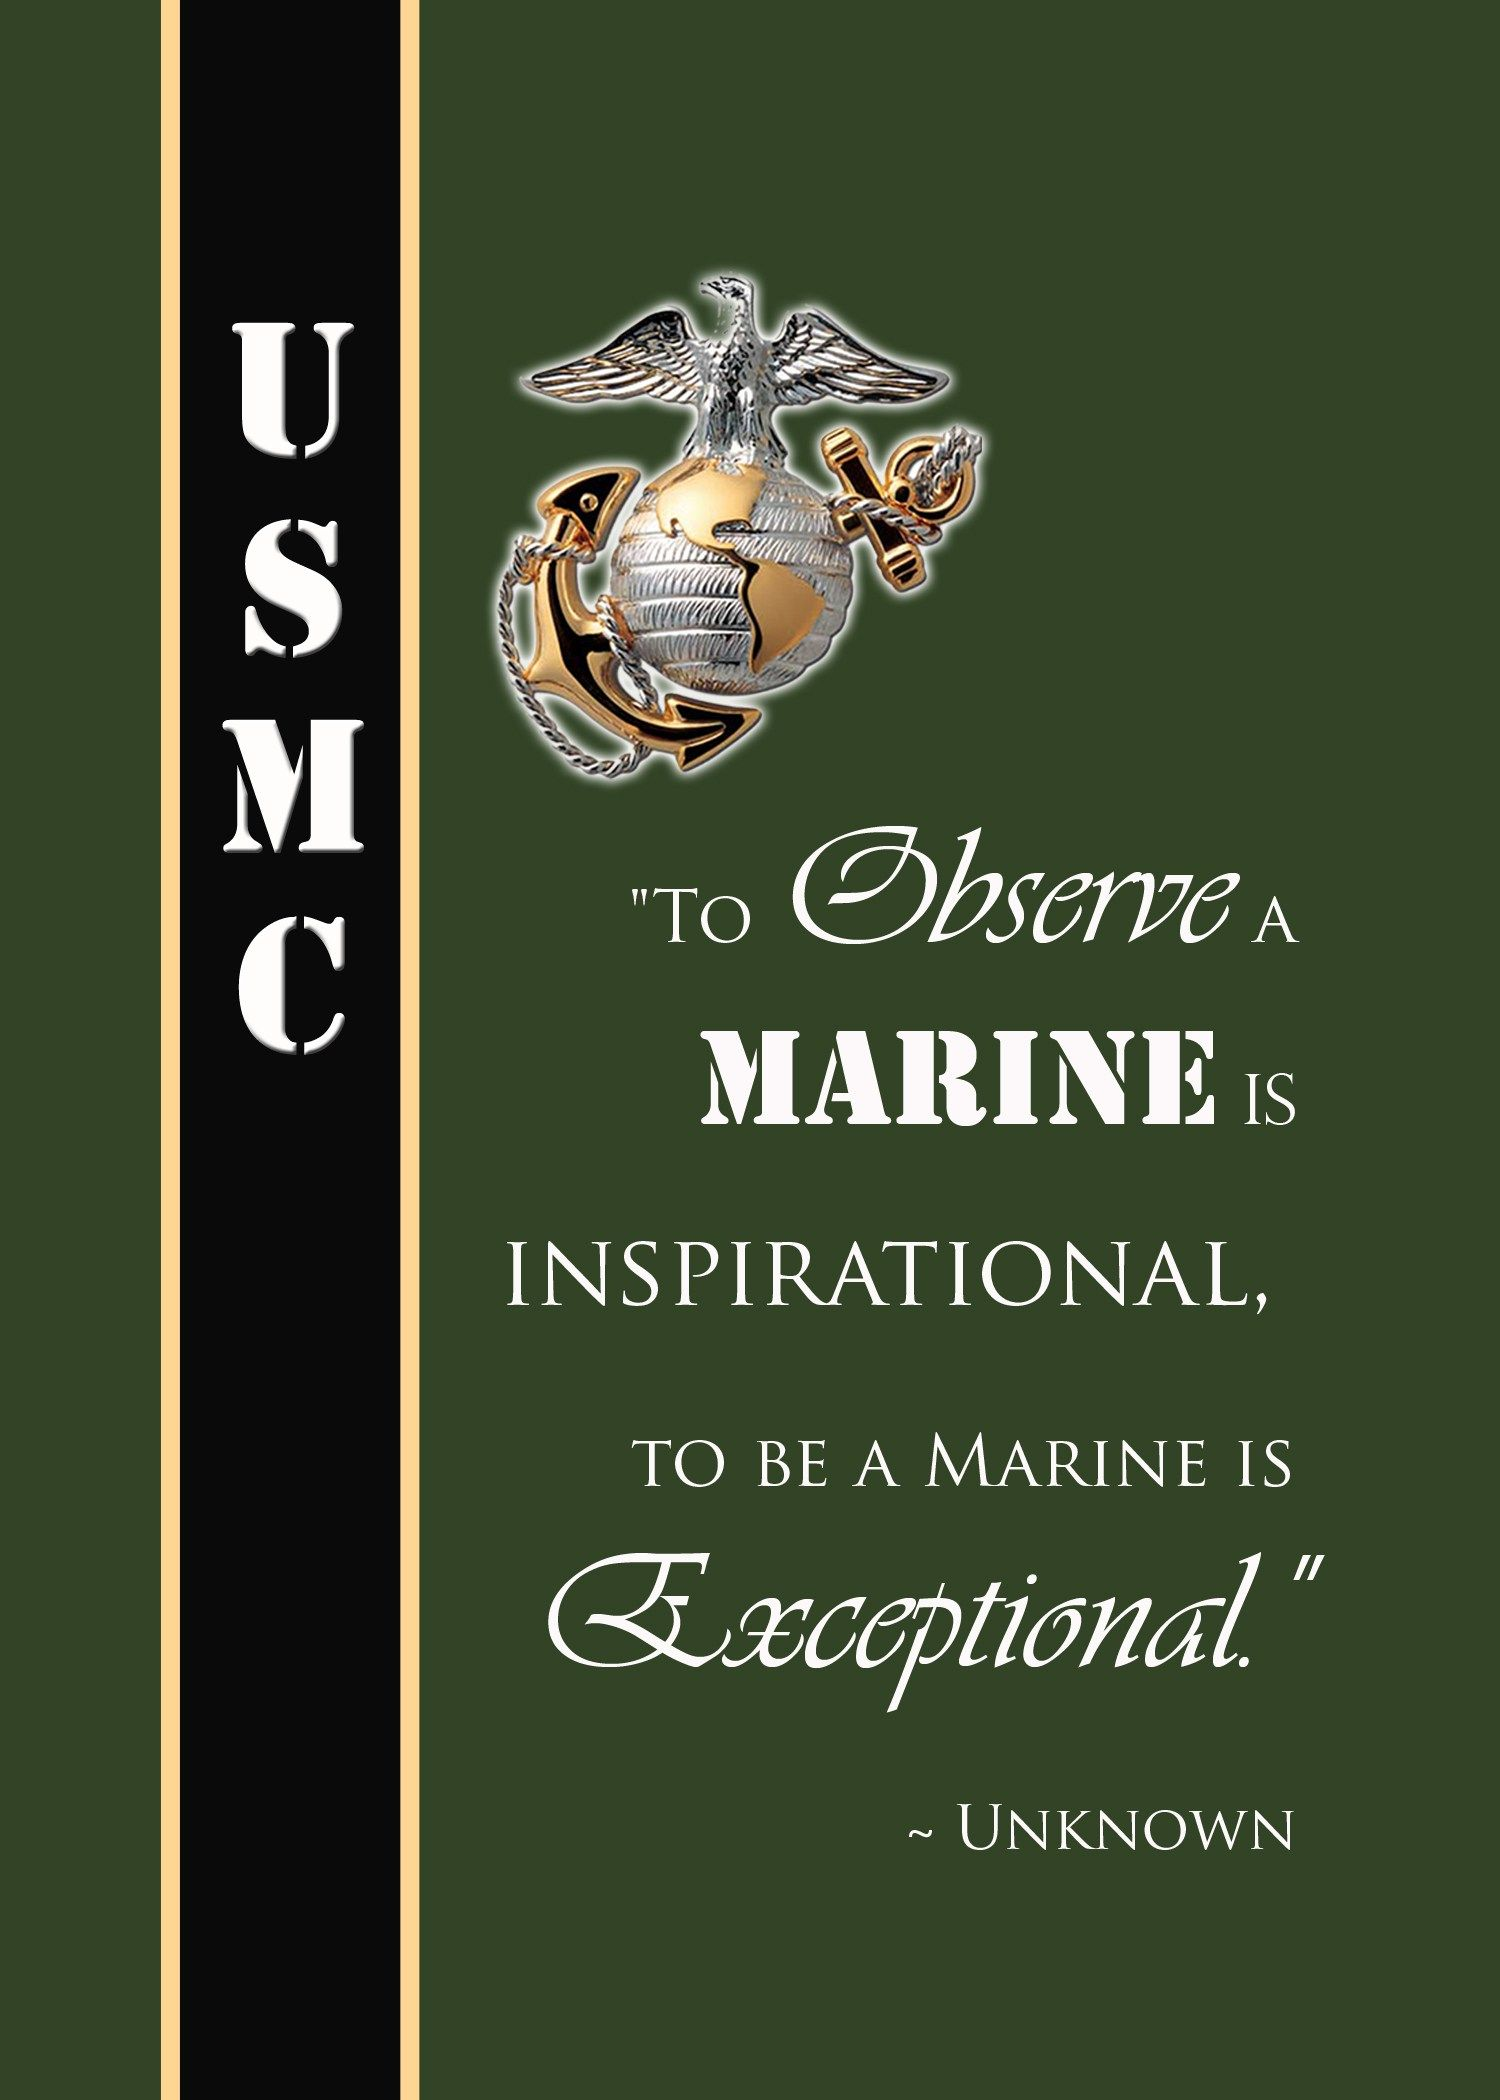 Eleanor Roosevelt Quotes Marines Happy Birthday Marine Corps From The Mother Of Three Marinesto